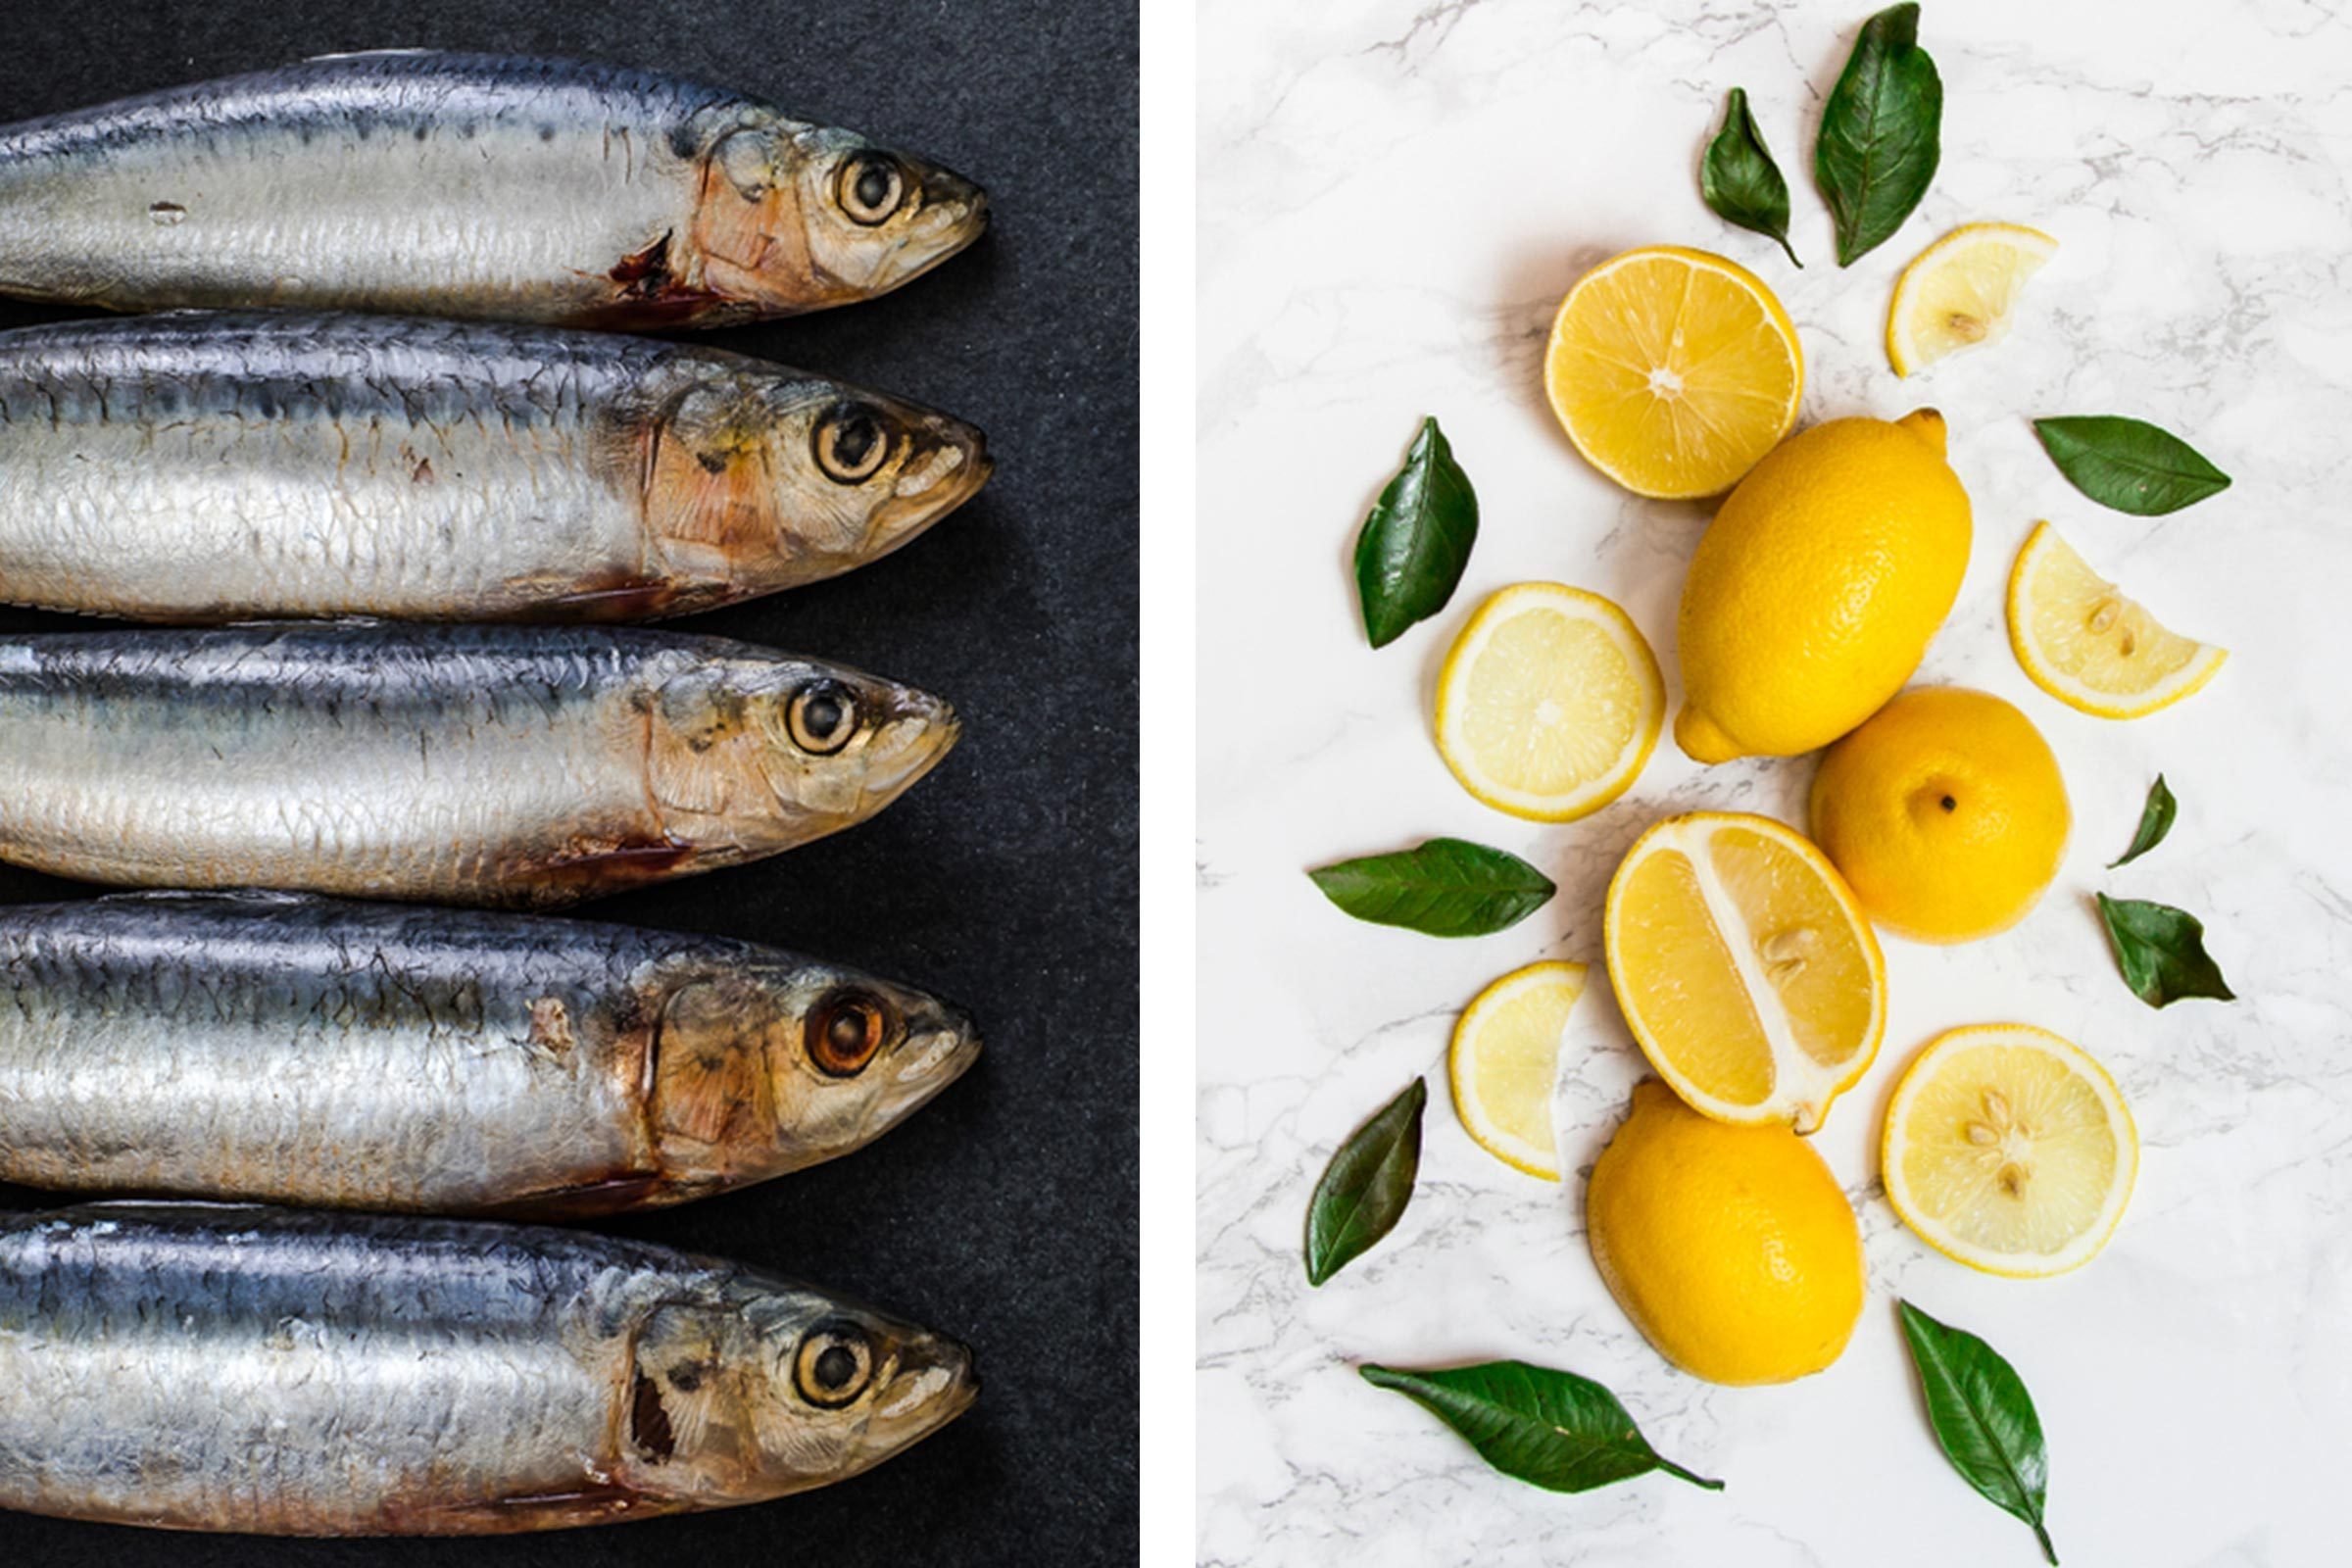 Slide 1 of 21: If you're about to cook fish but are worried about the scent lingering on your hands afterward, halve a lemon and rub your hands with the cut ends before handling fish. If the smell persists after you've finished cooking, scrub wet hands with baking soda and rinse with warm water. Here's how to clean your house with a lemon instead of chemicals.